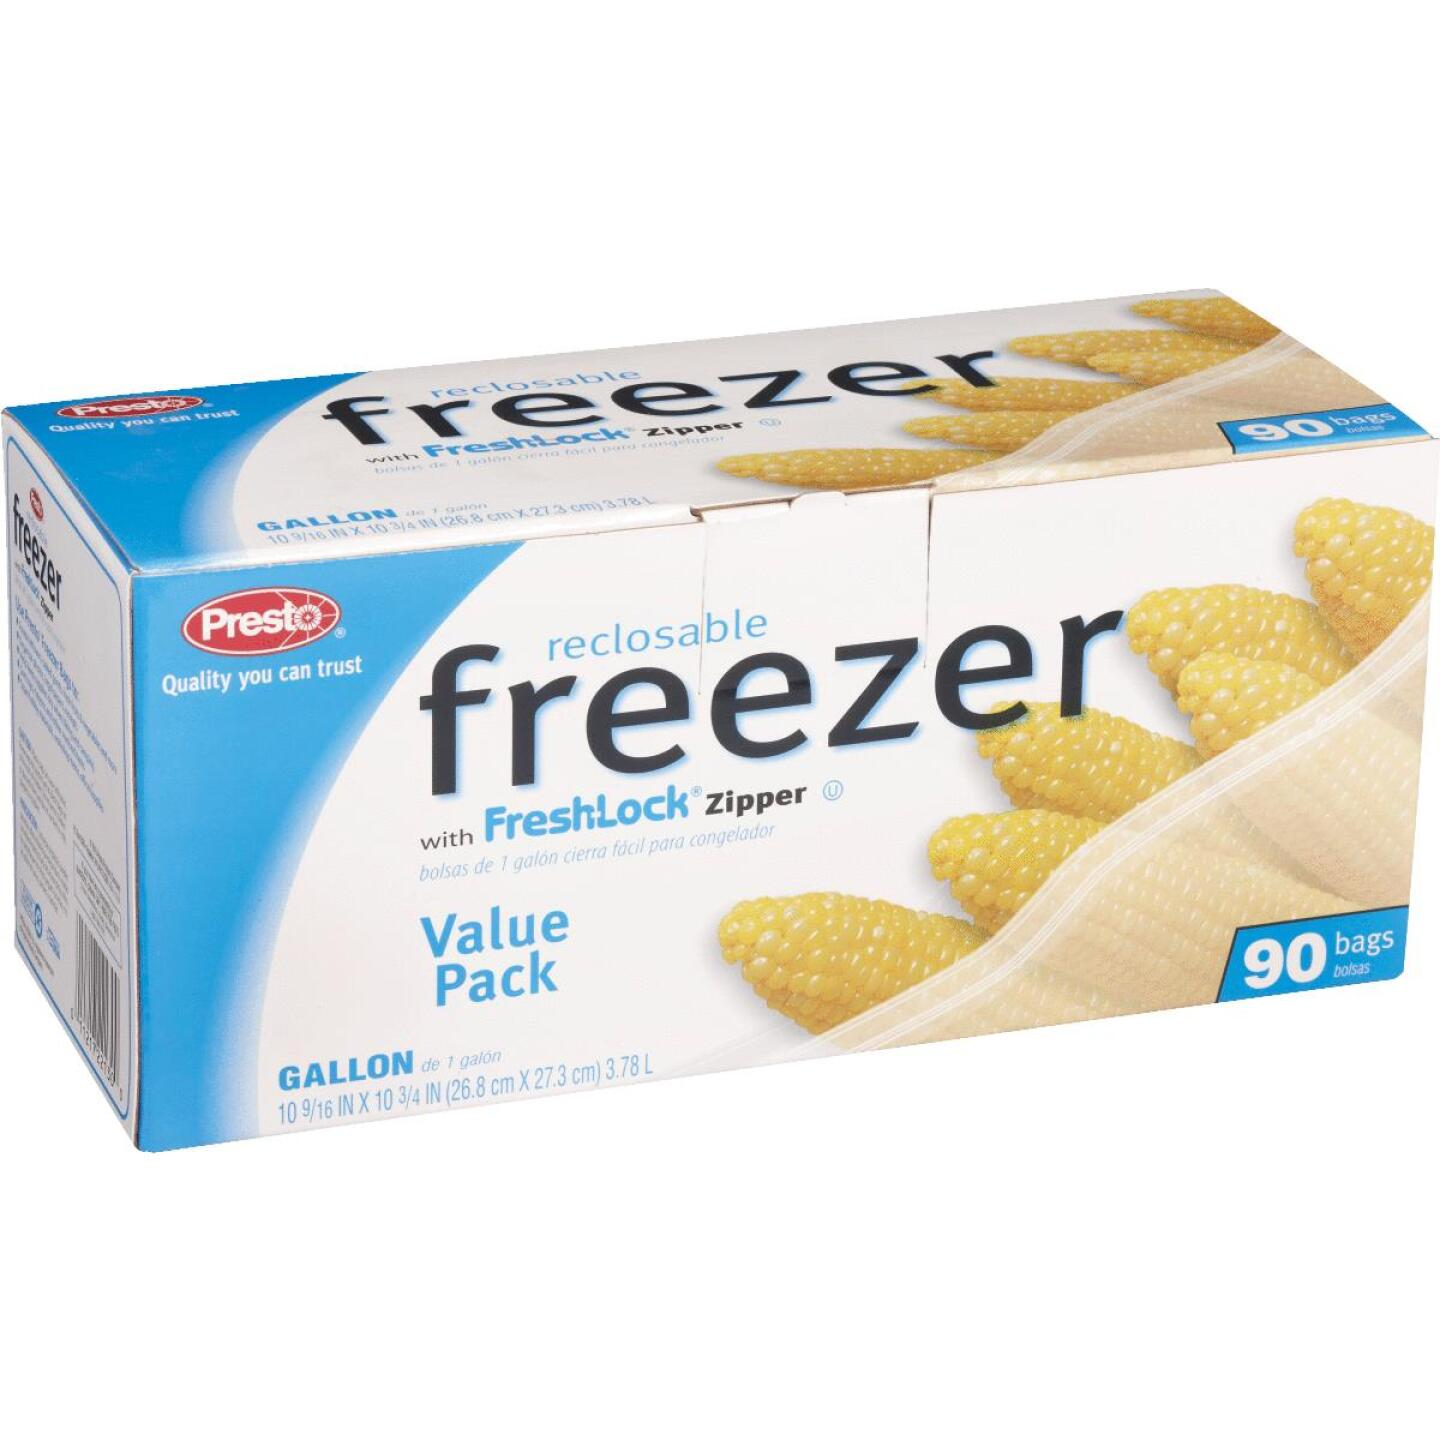 Presto 1 Gal. Reclosable Freezer Bag (90 Count) Image 3